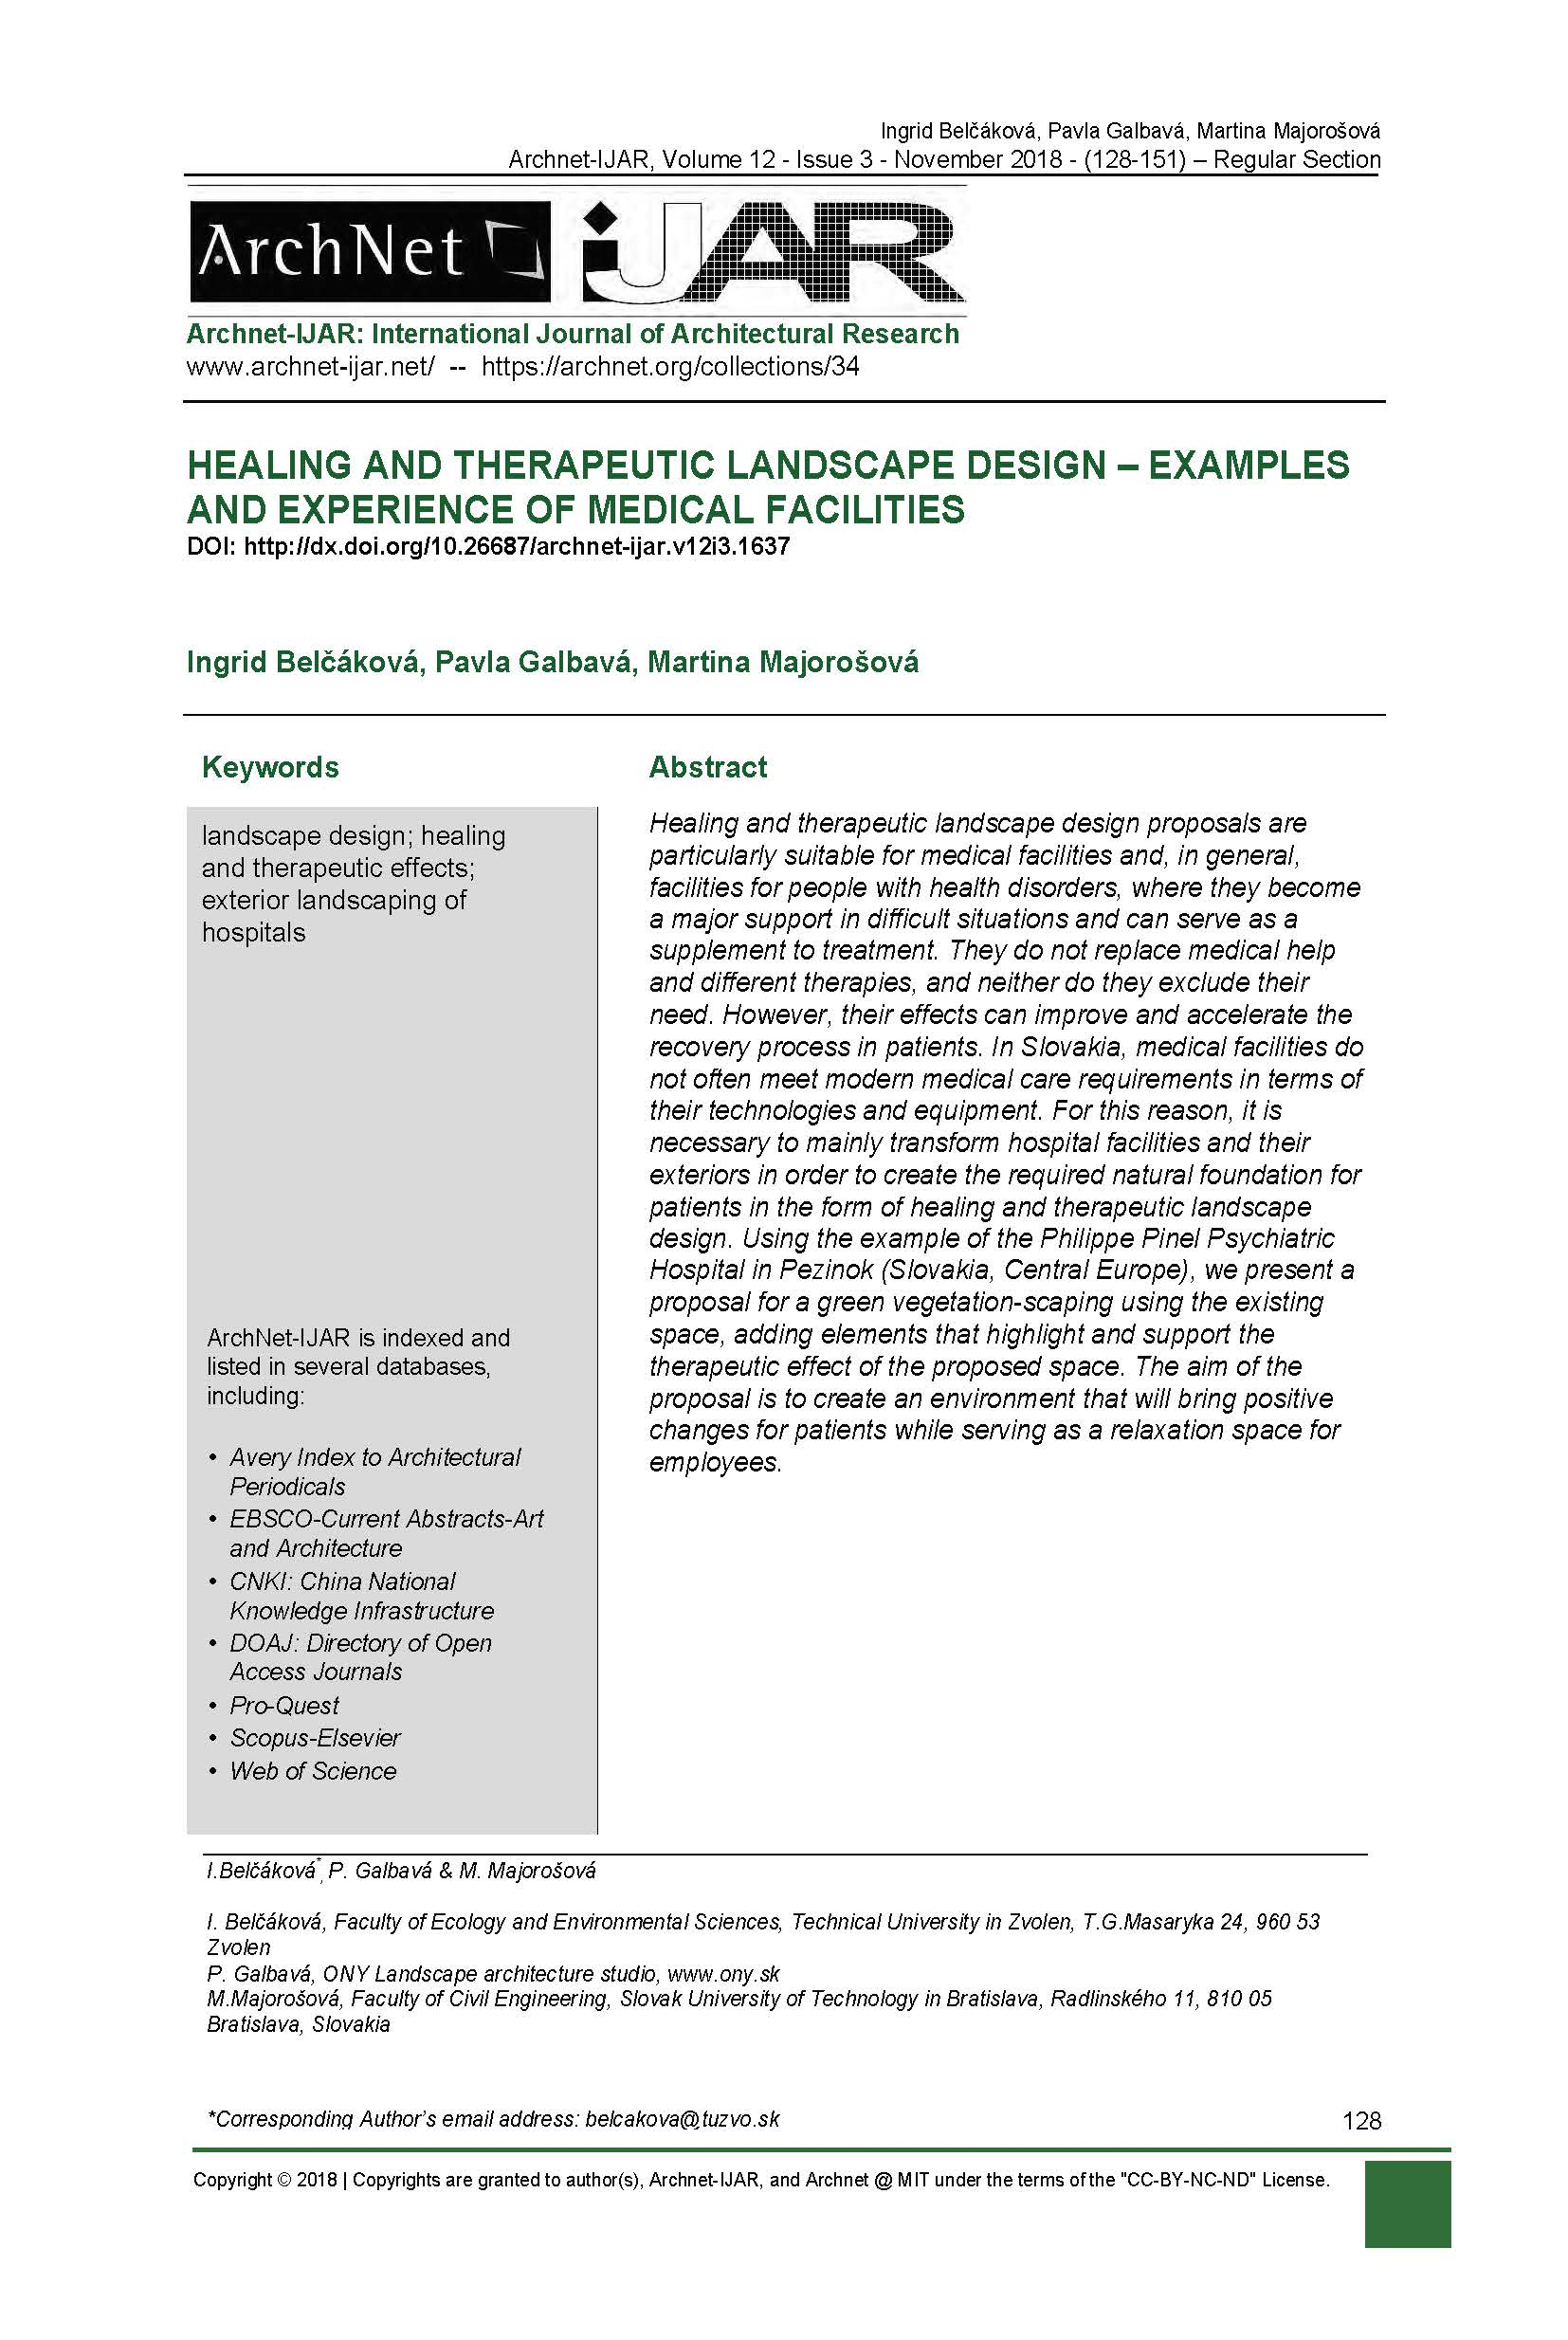 Healing And Theraputic Landscape Design Examples And Experience Of Medical Facilities Archnet